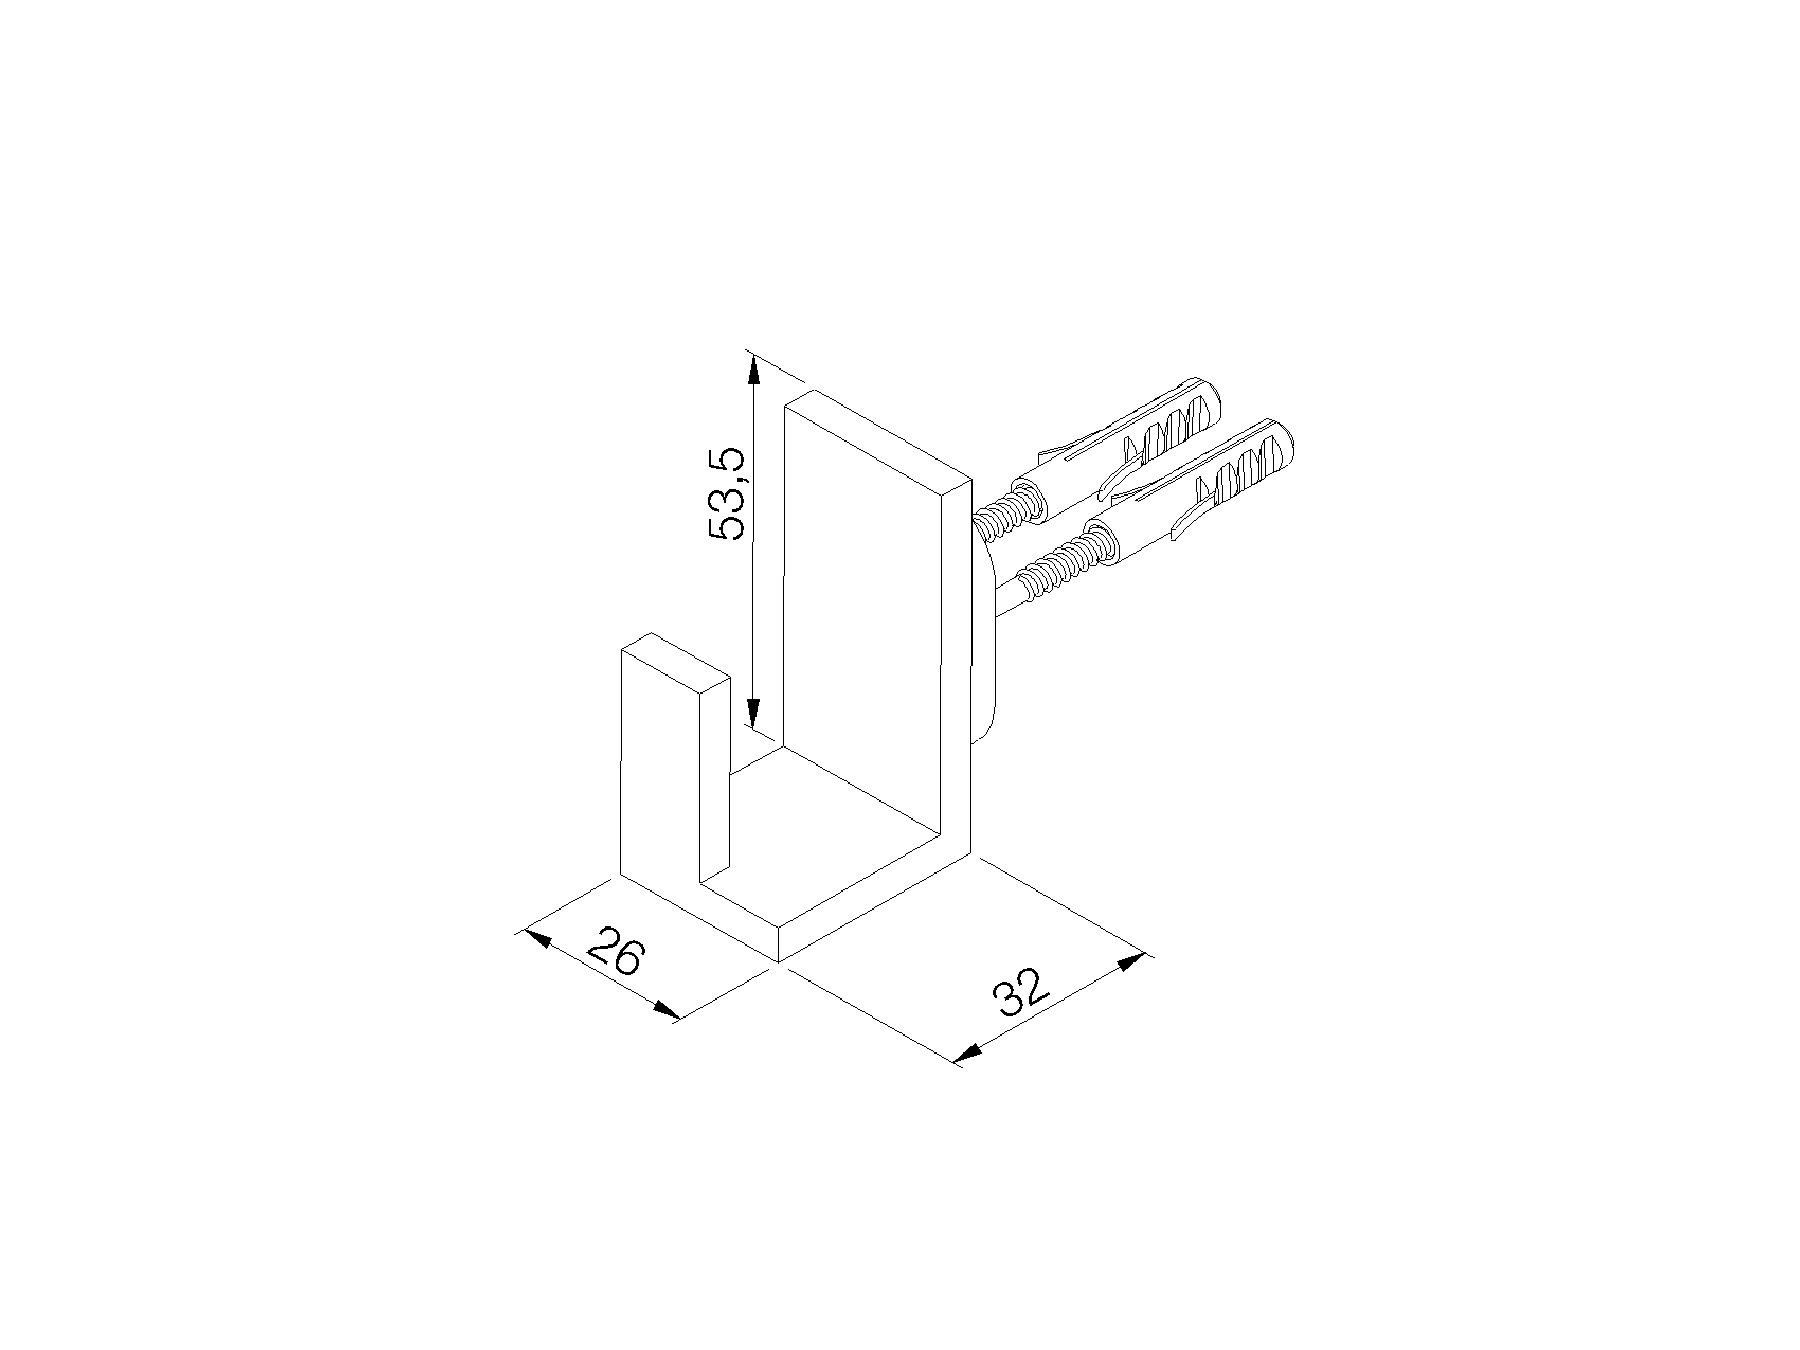 Dressing gown holder 6285.--.53